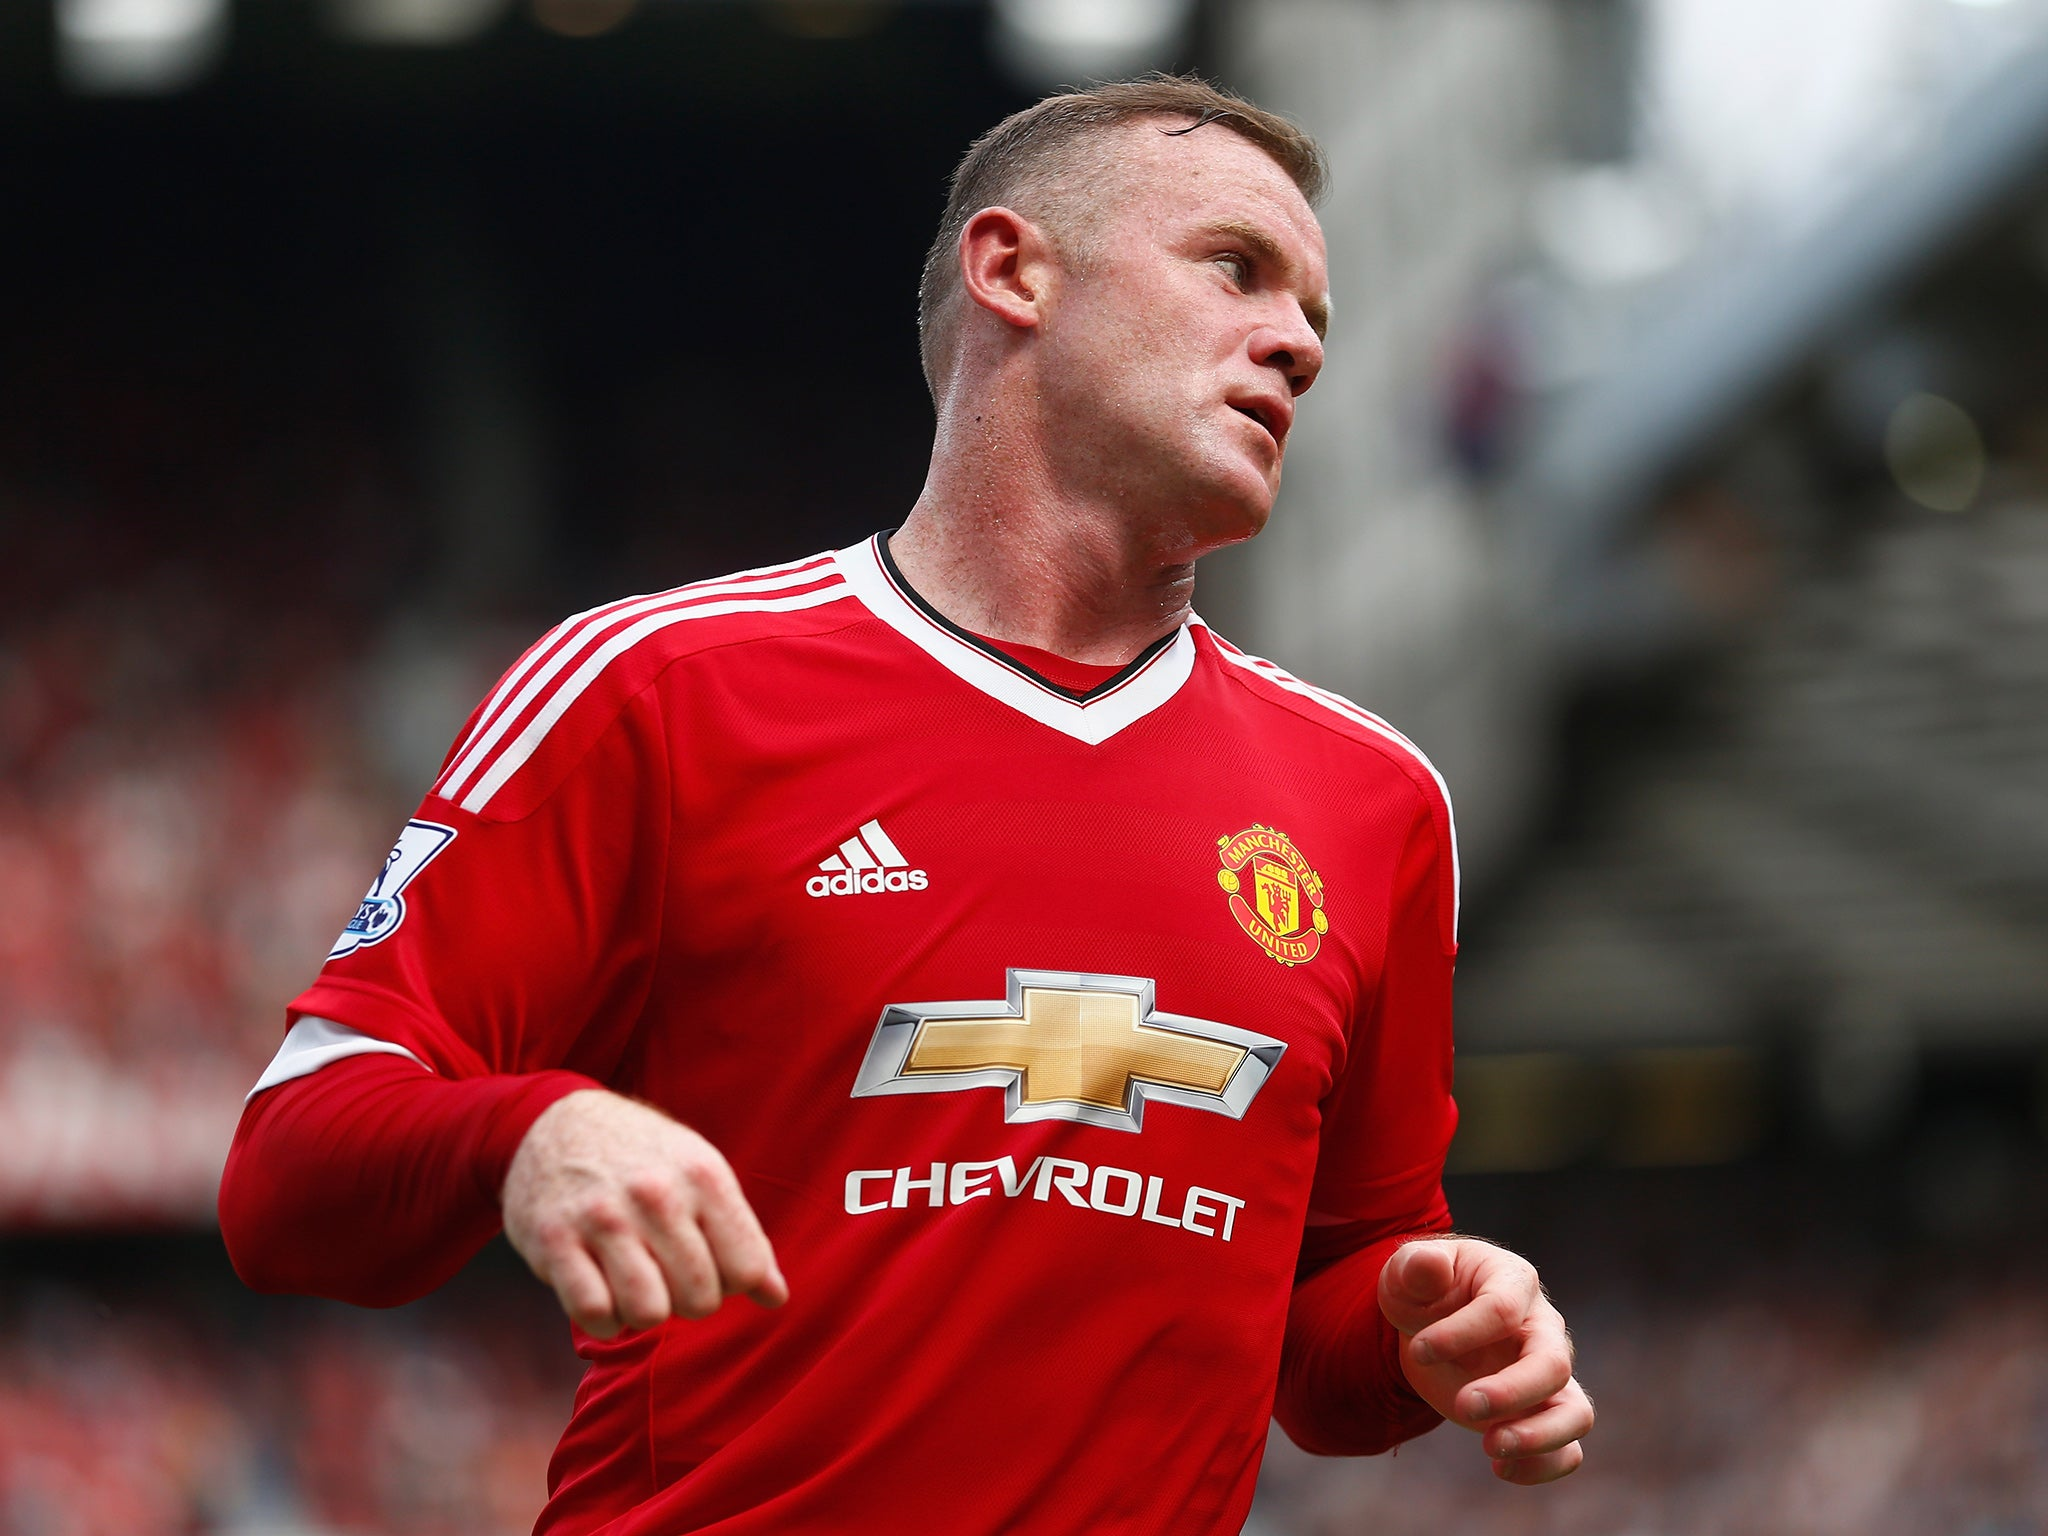 wayne rooney - photo #36